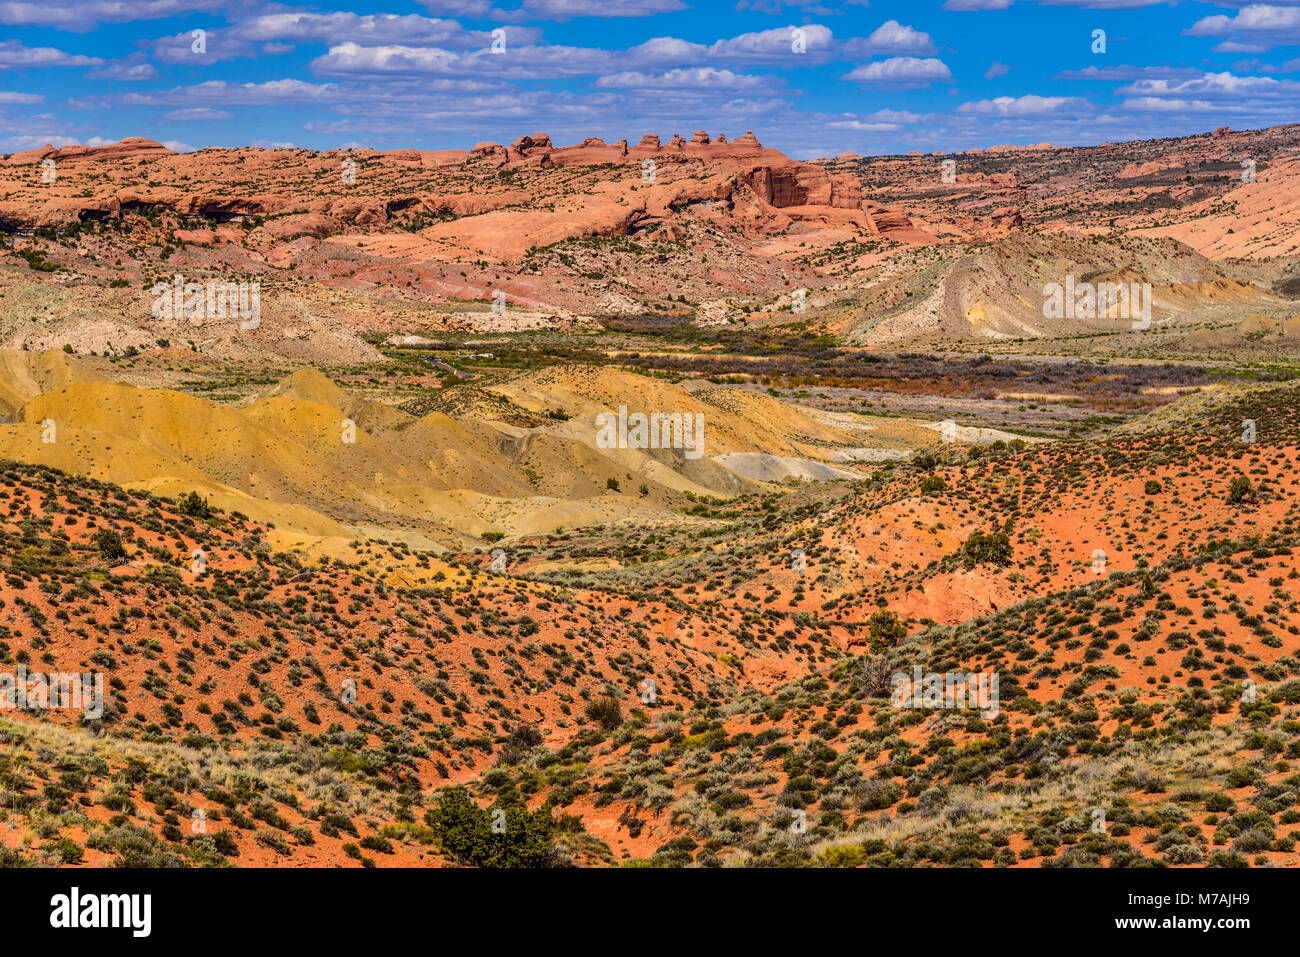 The USA, Utah, Grand county, Moab, Arches National Park, cache Valley - Stock Image